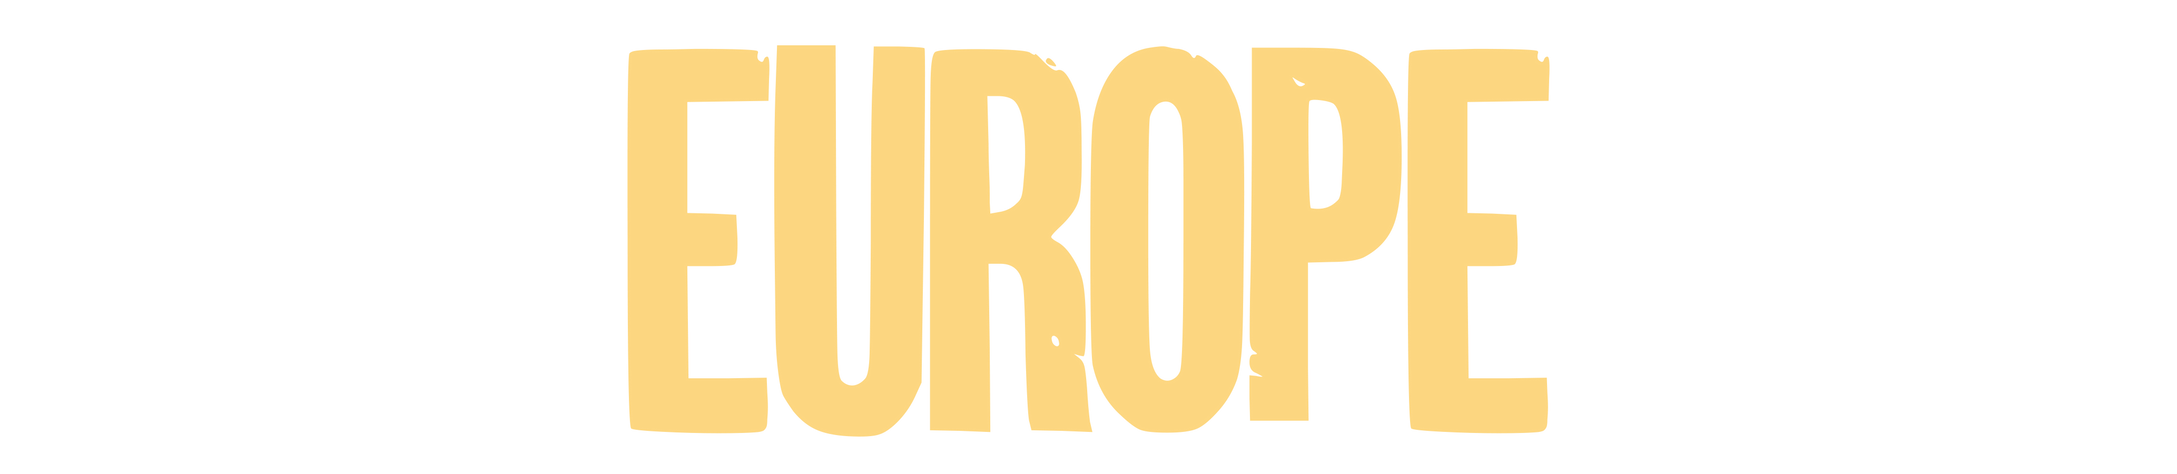 EUROPE_OPAQUE.png